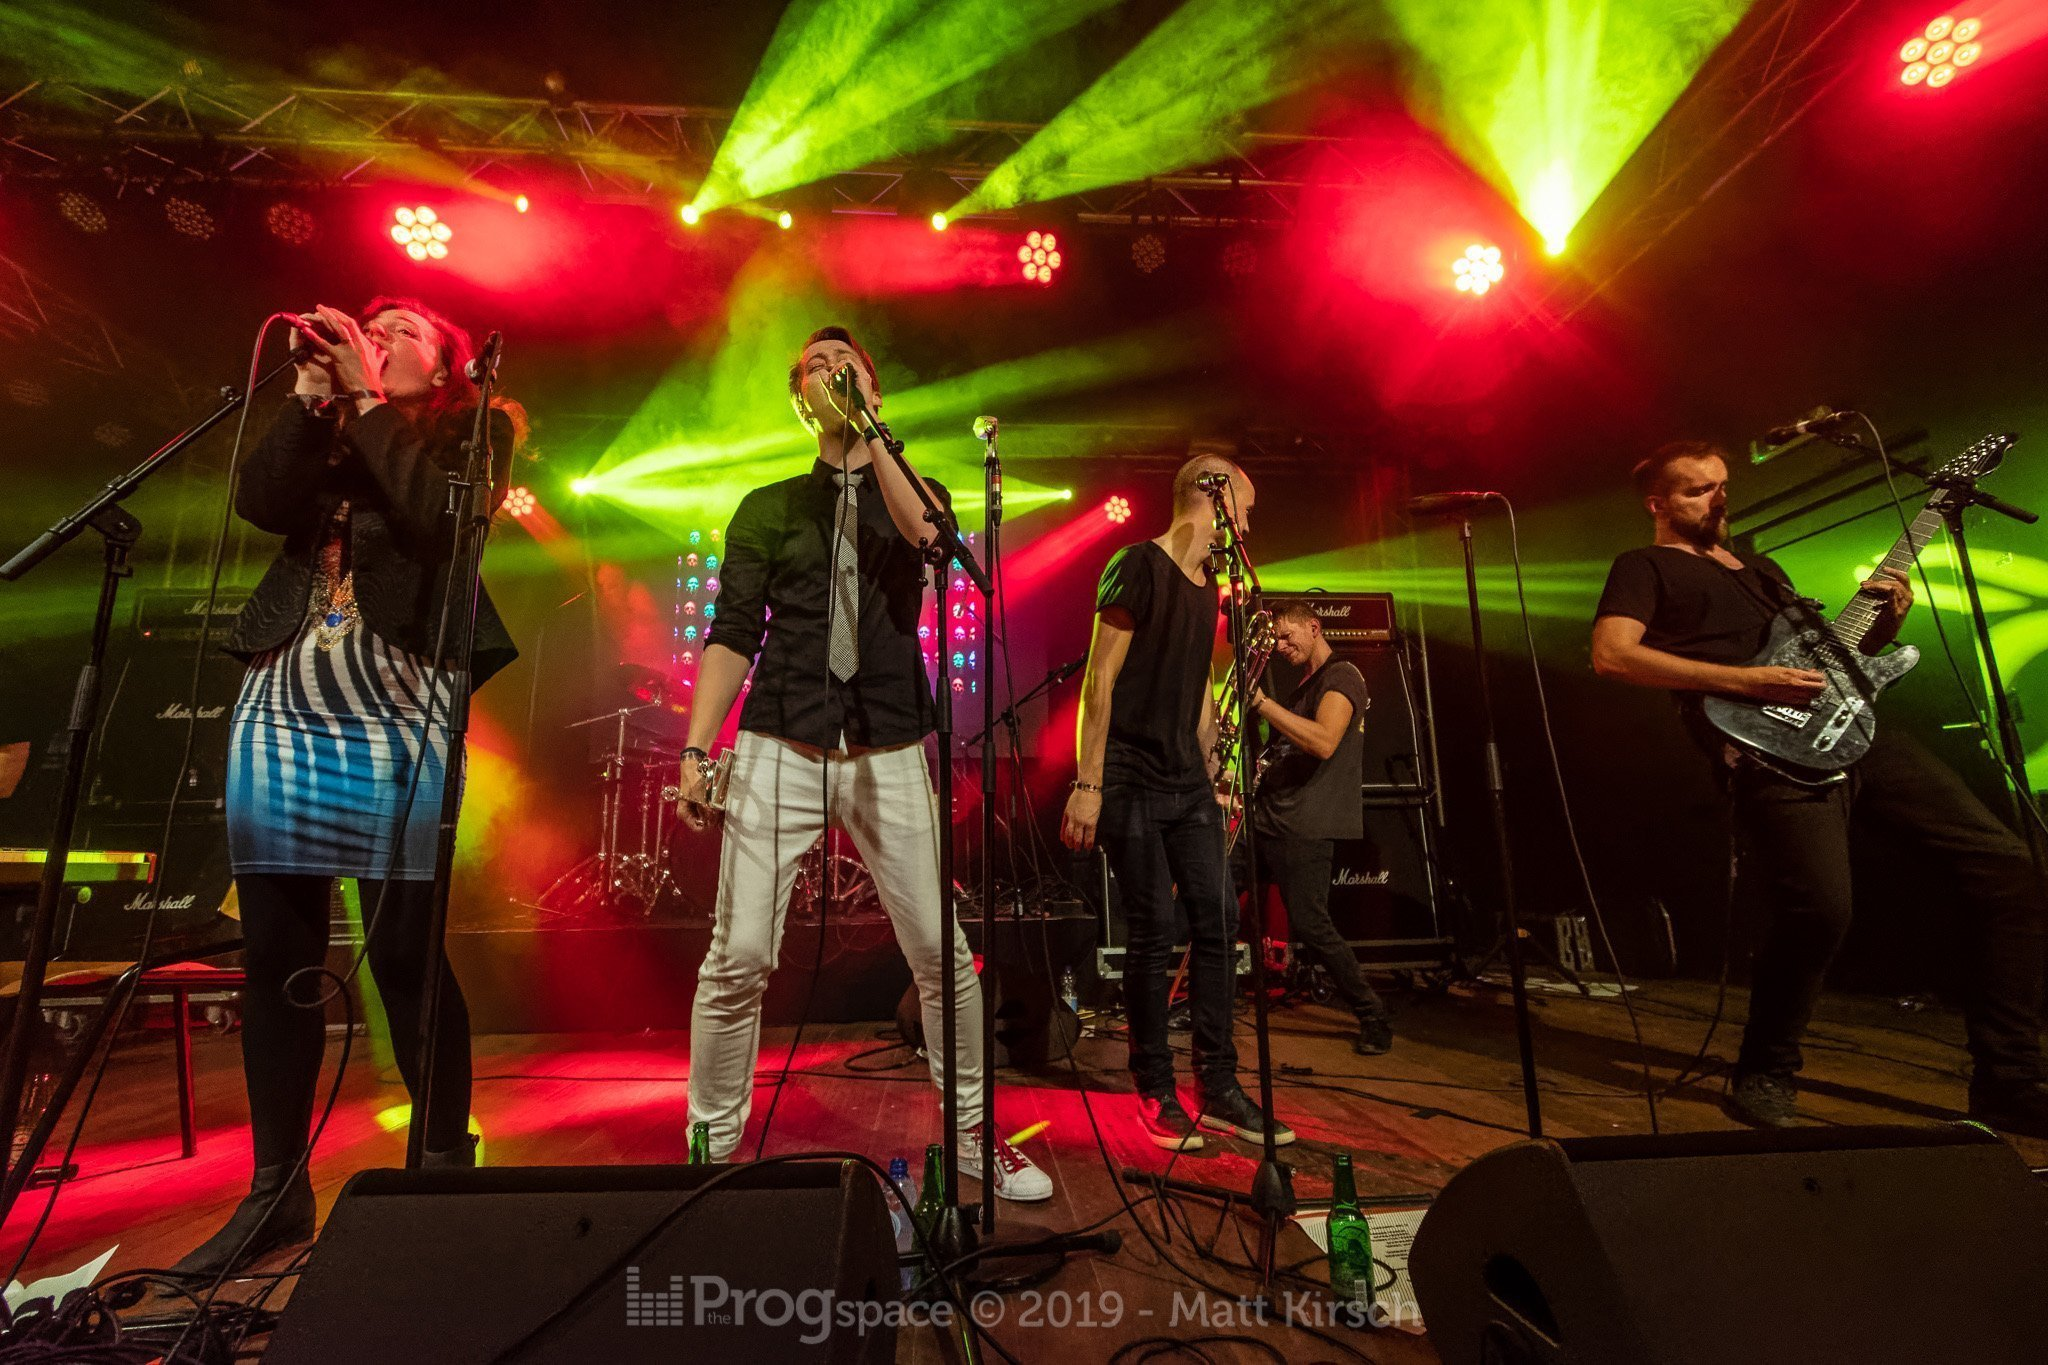 Progpower Europe 2019: Diablo Swing Orchestra